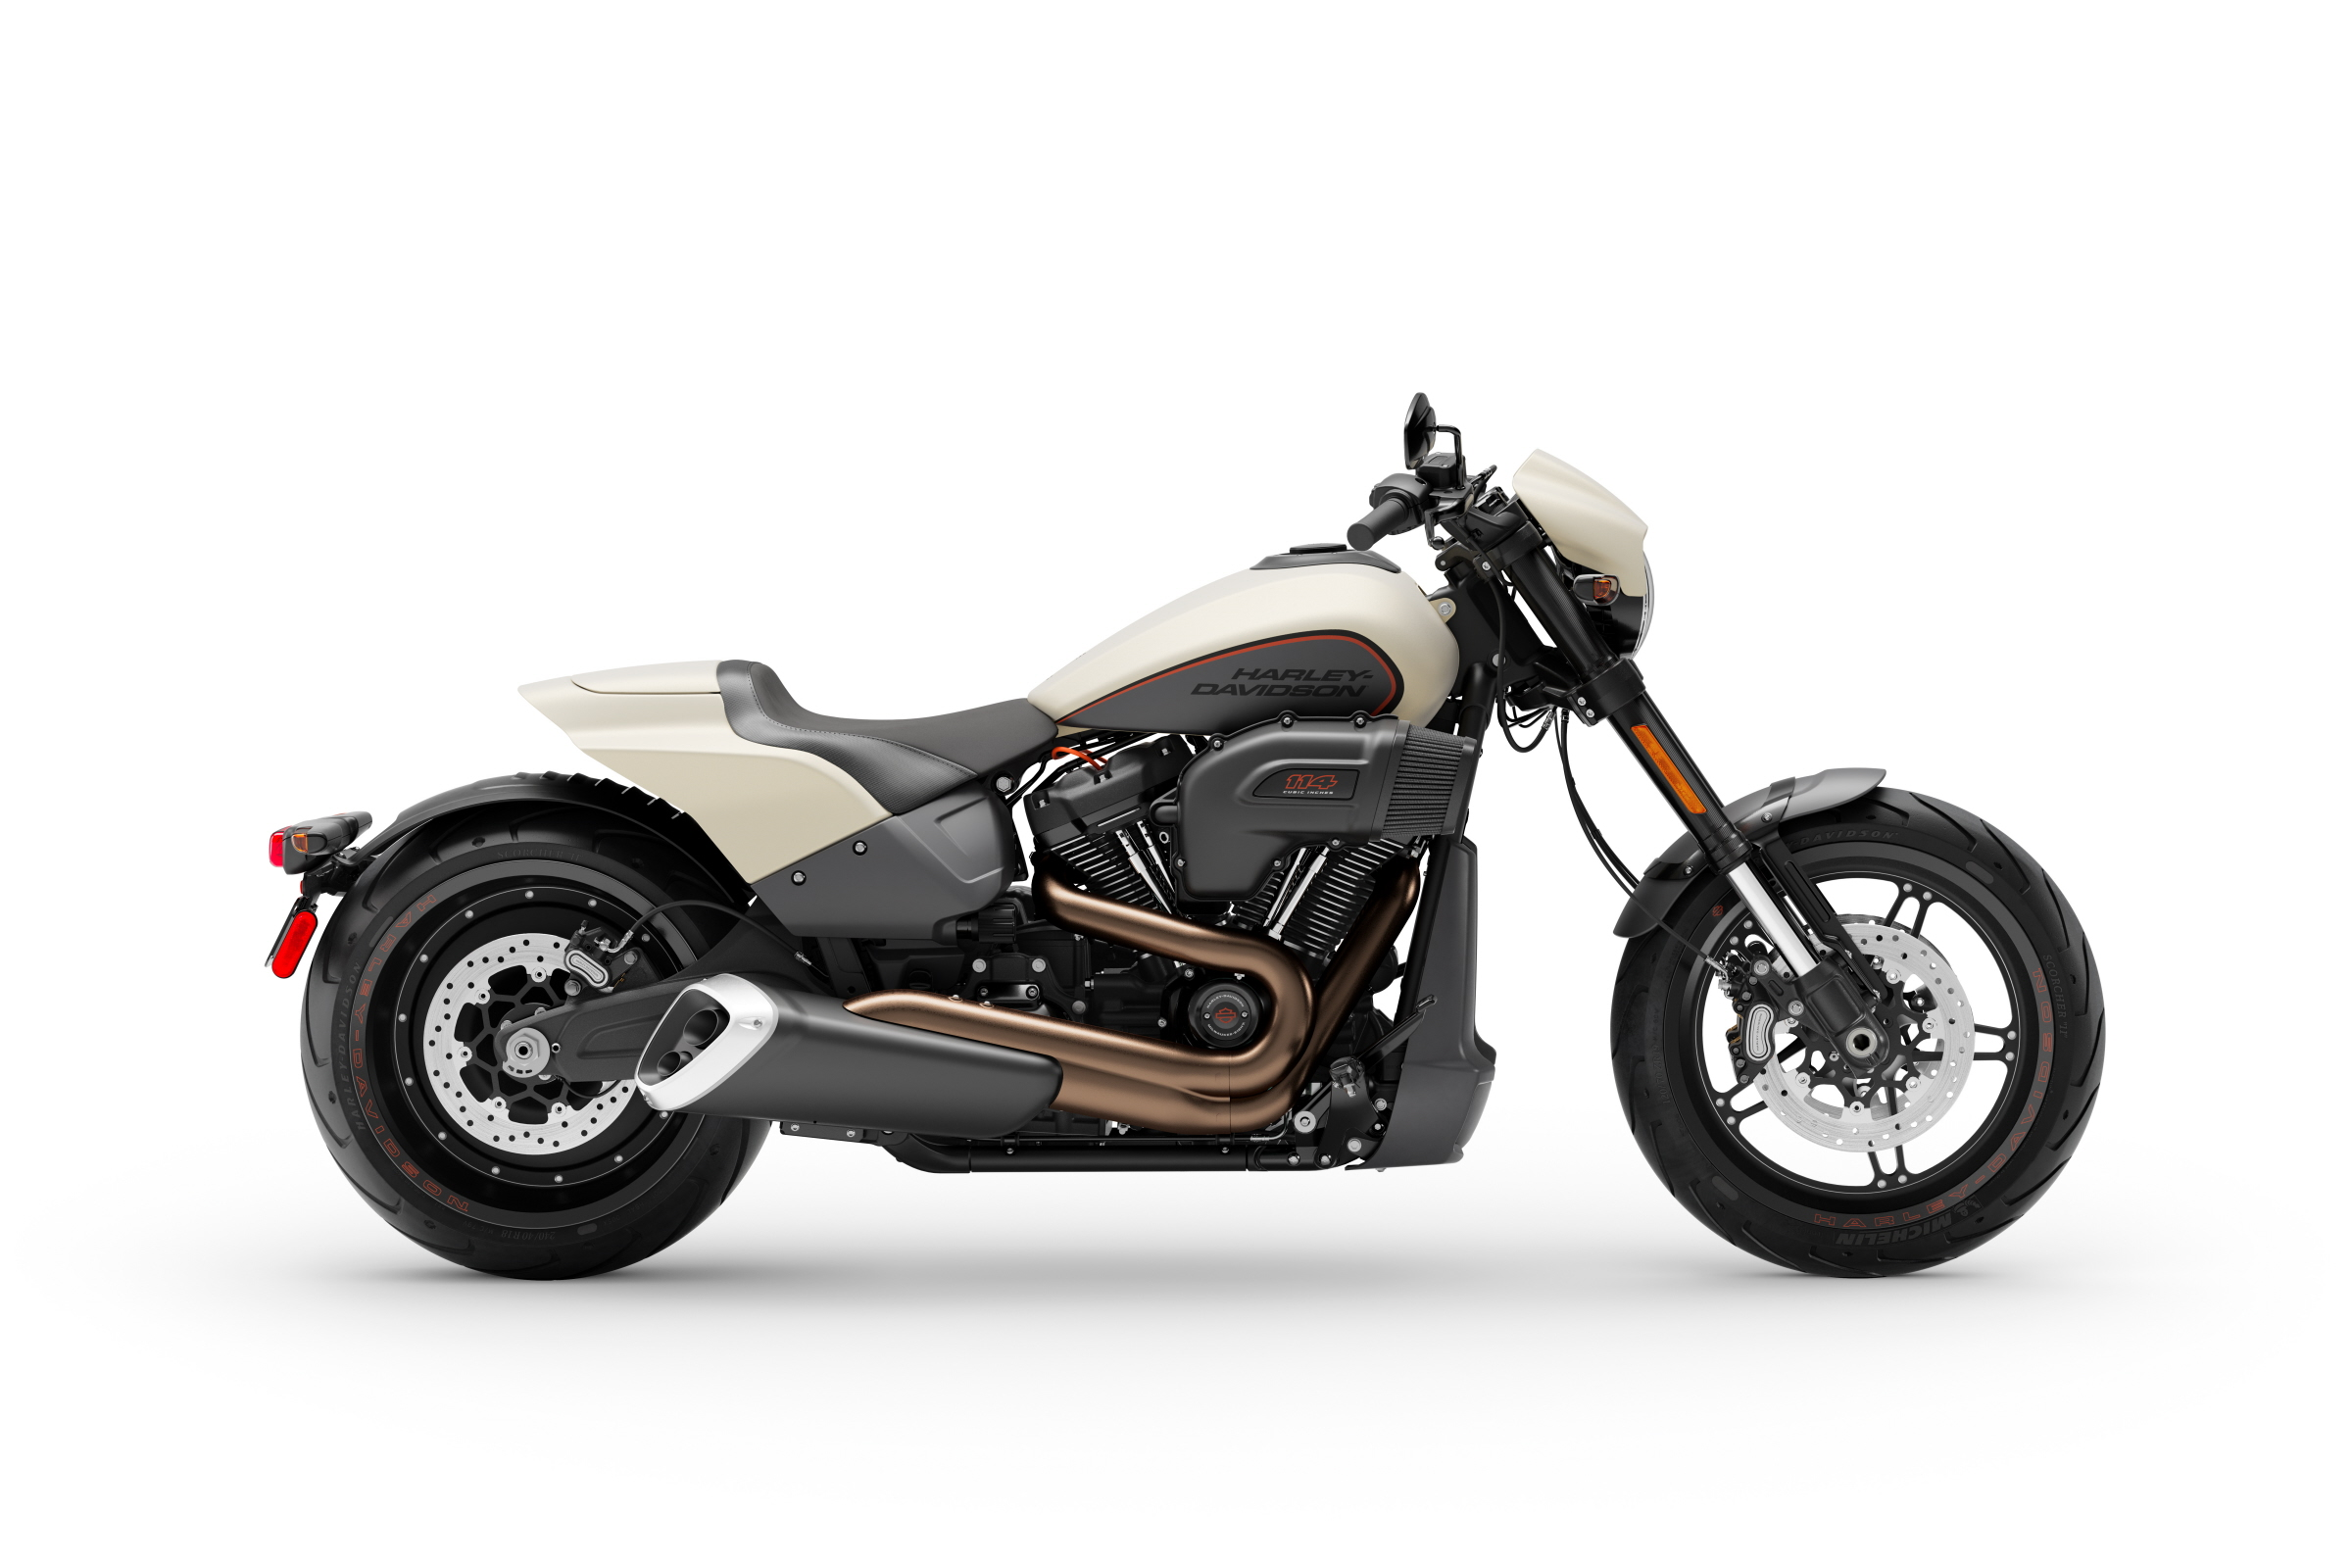 Harley Davidson Fxdr 114 Coming For 2019 New Performance: 2019 Harley-Davidson FXDR 114: The Muscular New Top Of The